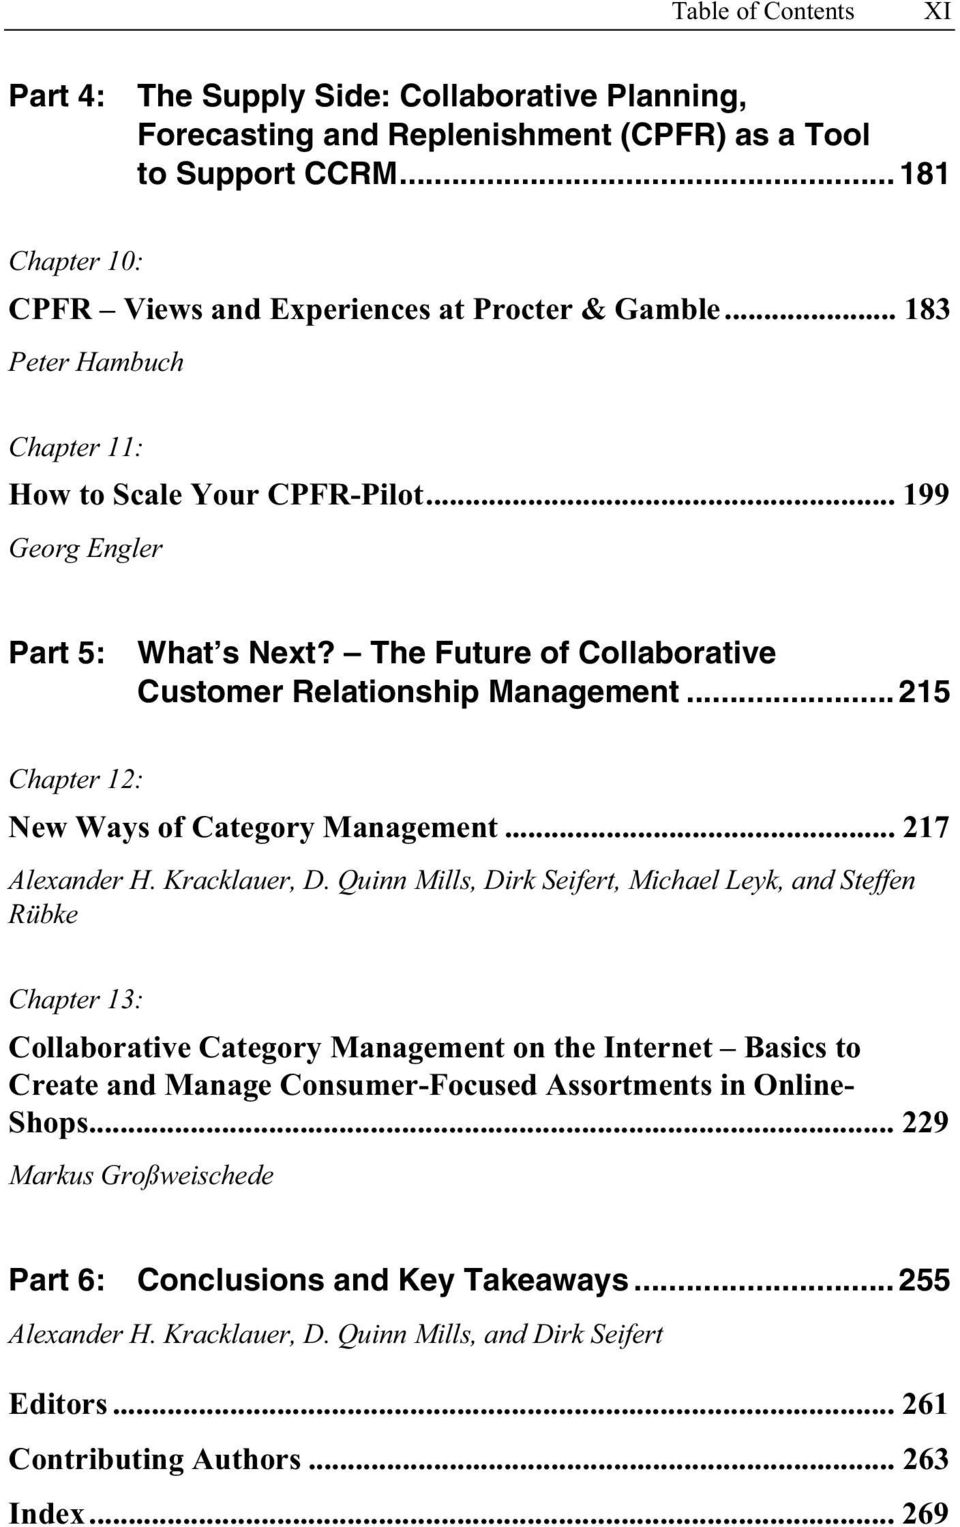 Collaborative customer relationship management pdf for Armin heinzl